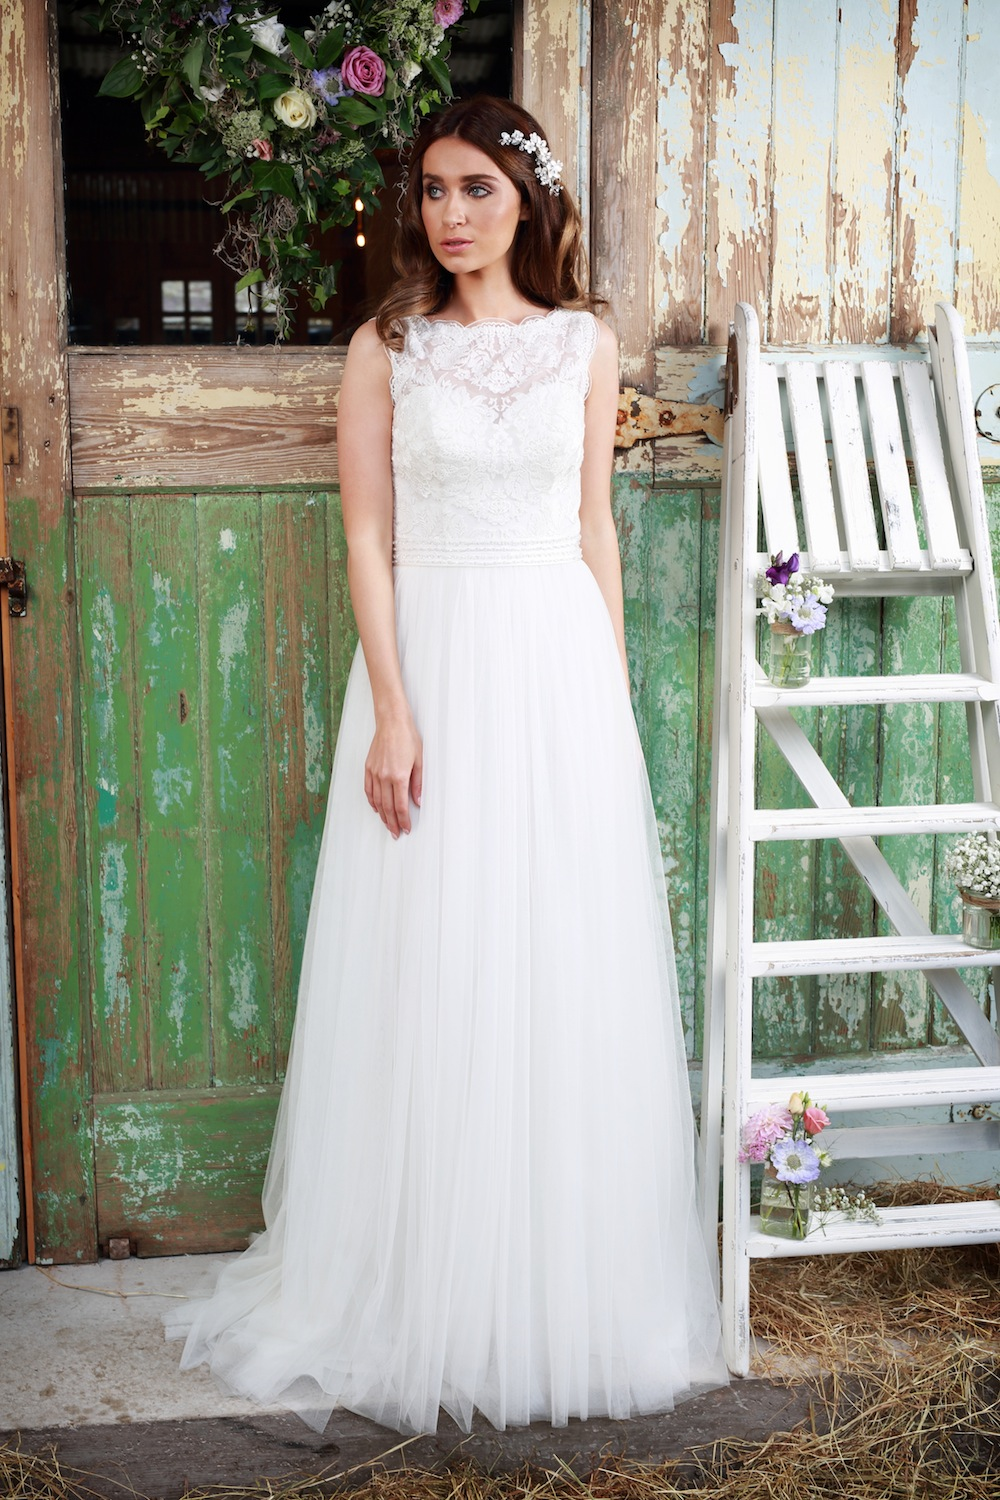 Amanda Wyatt 2016 Wedding Gowns : Chantilly - soft tulle style with a Chantilly lace bodice, delicate beading around waistline and a simple small train